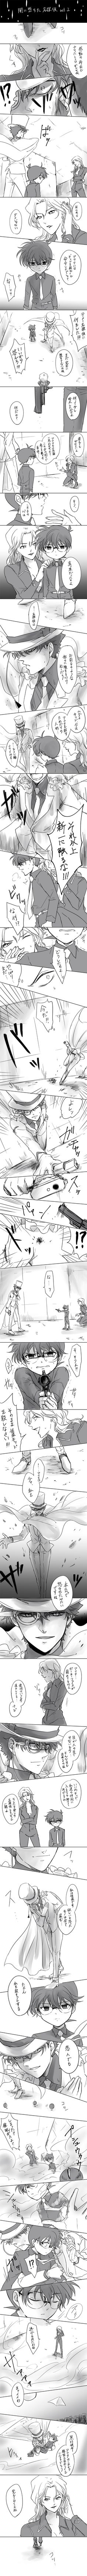 Detective ② fell to darkness